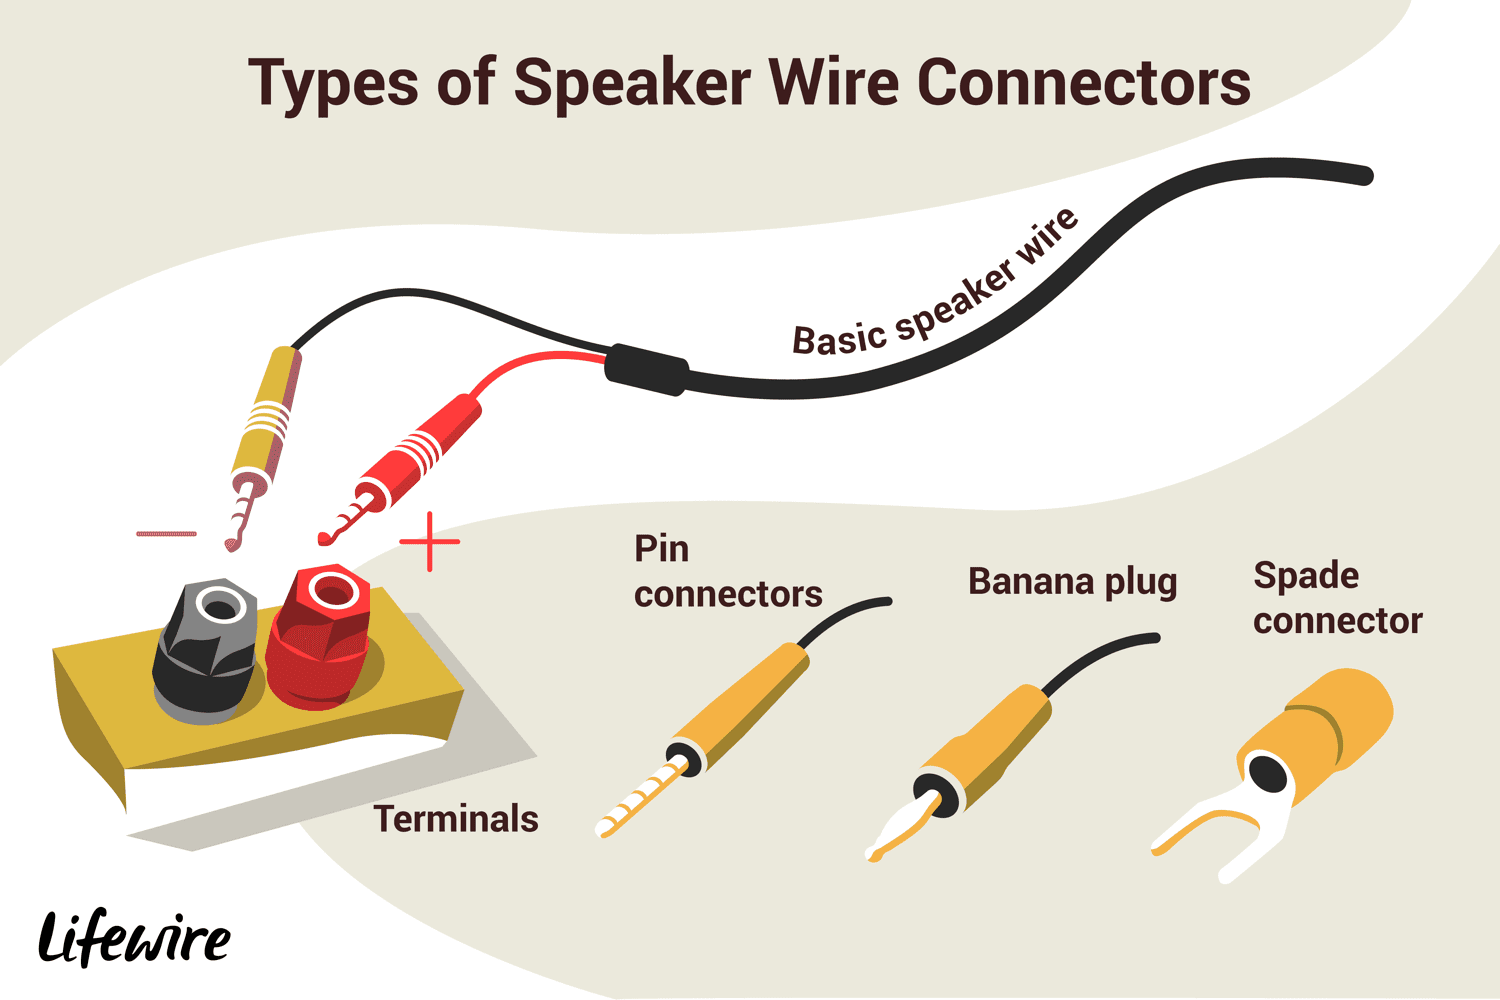 hight resolution of an illustration of the different types of speaker wire connectors